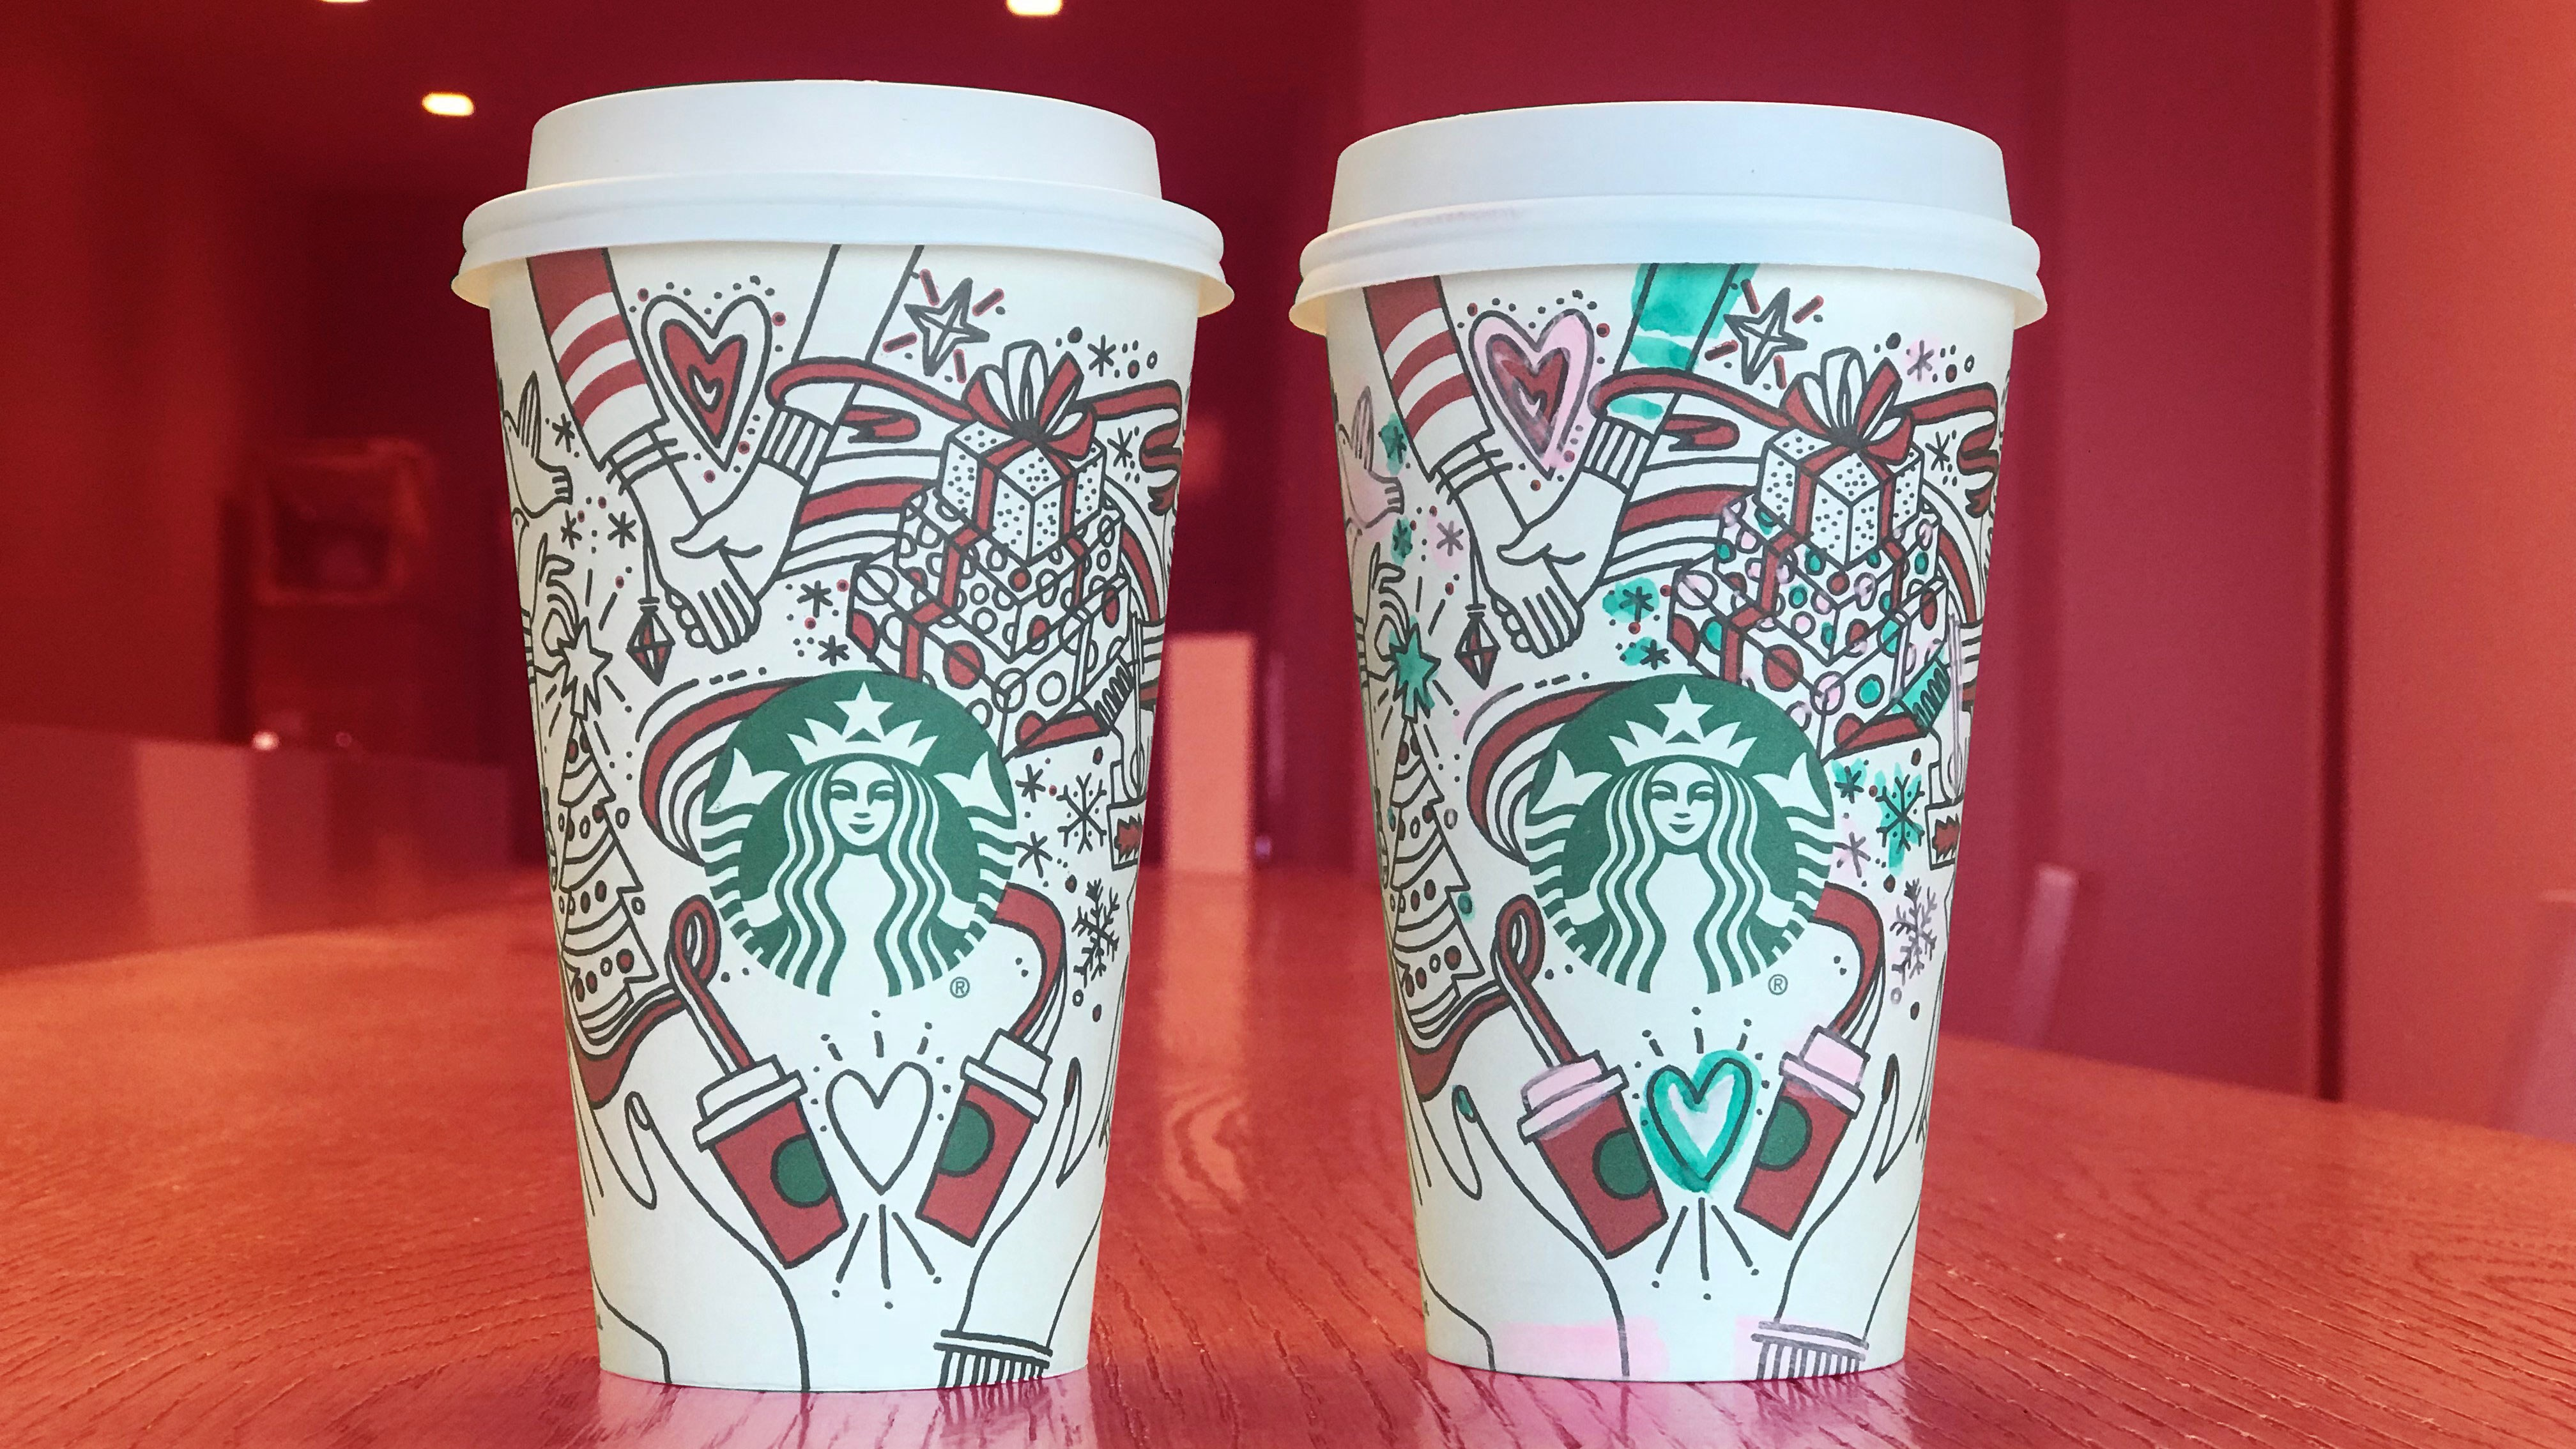 Watermelon Wallpaper Cute One Cute Starbucks Wallpapers With Holiday Cups Close Up Photo